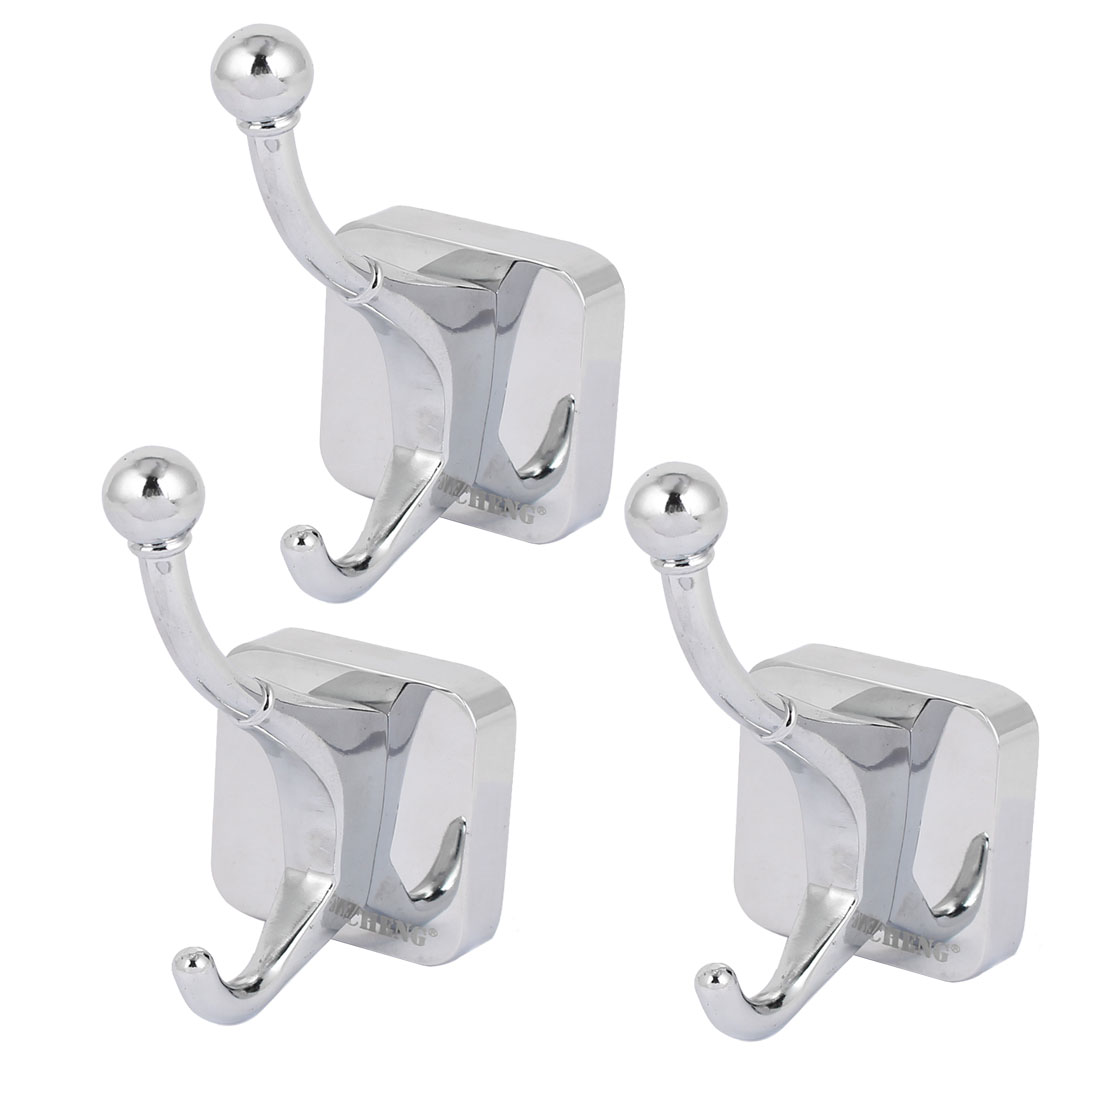 50mm x 50mm Square Bottom Wall Mounted Clothes Hat Double Hook Hanger 3pcs